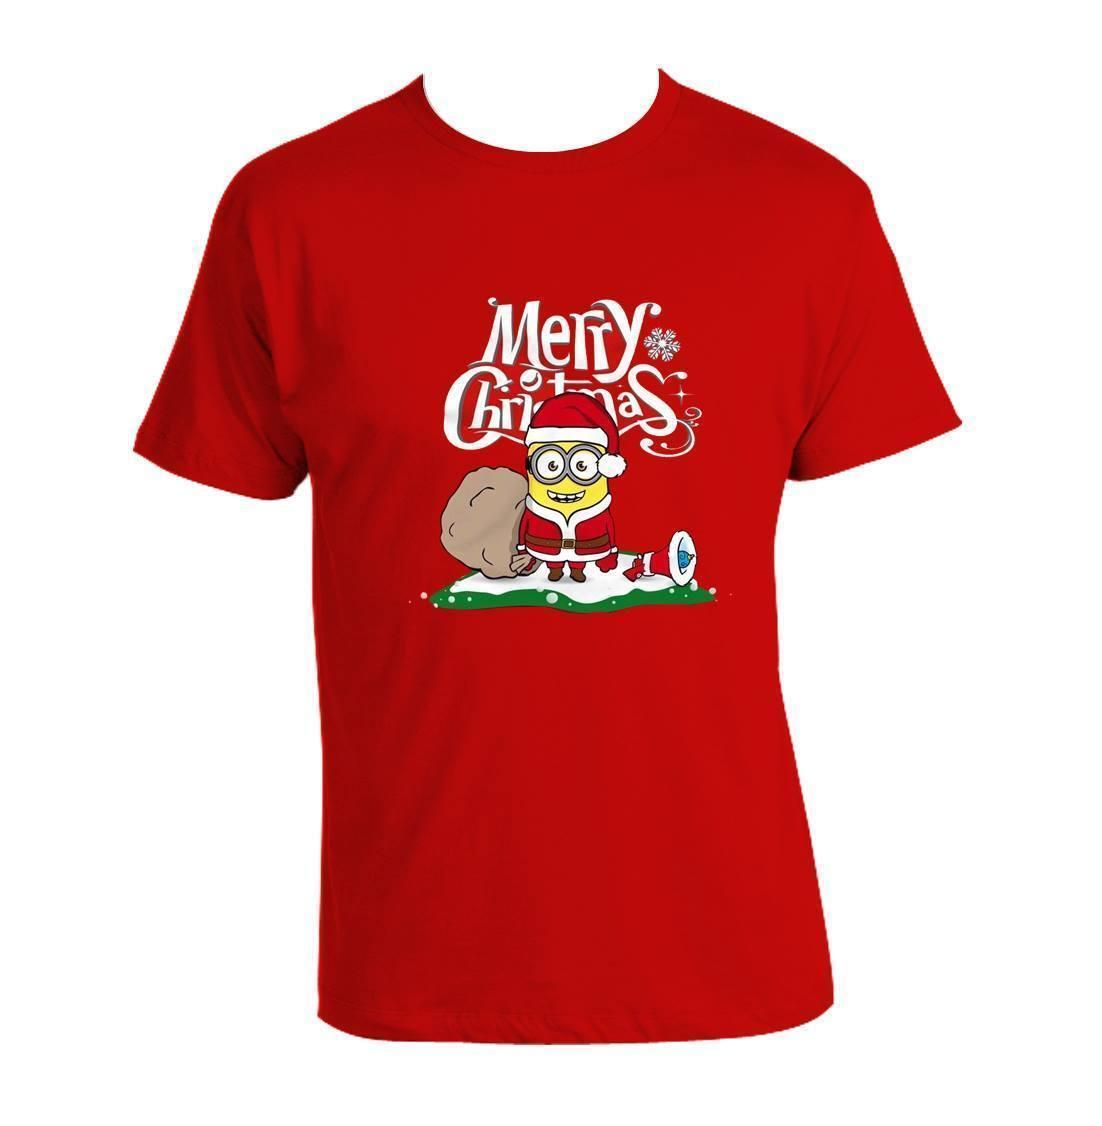 Minions Christmas.Christmas Minions T Shirt Funny Merry Christmas Minions Xmas Gift 100 Cotton Mens 2018 Fashion Brand T Shirt O Neck 100 Cotton